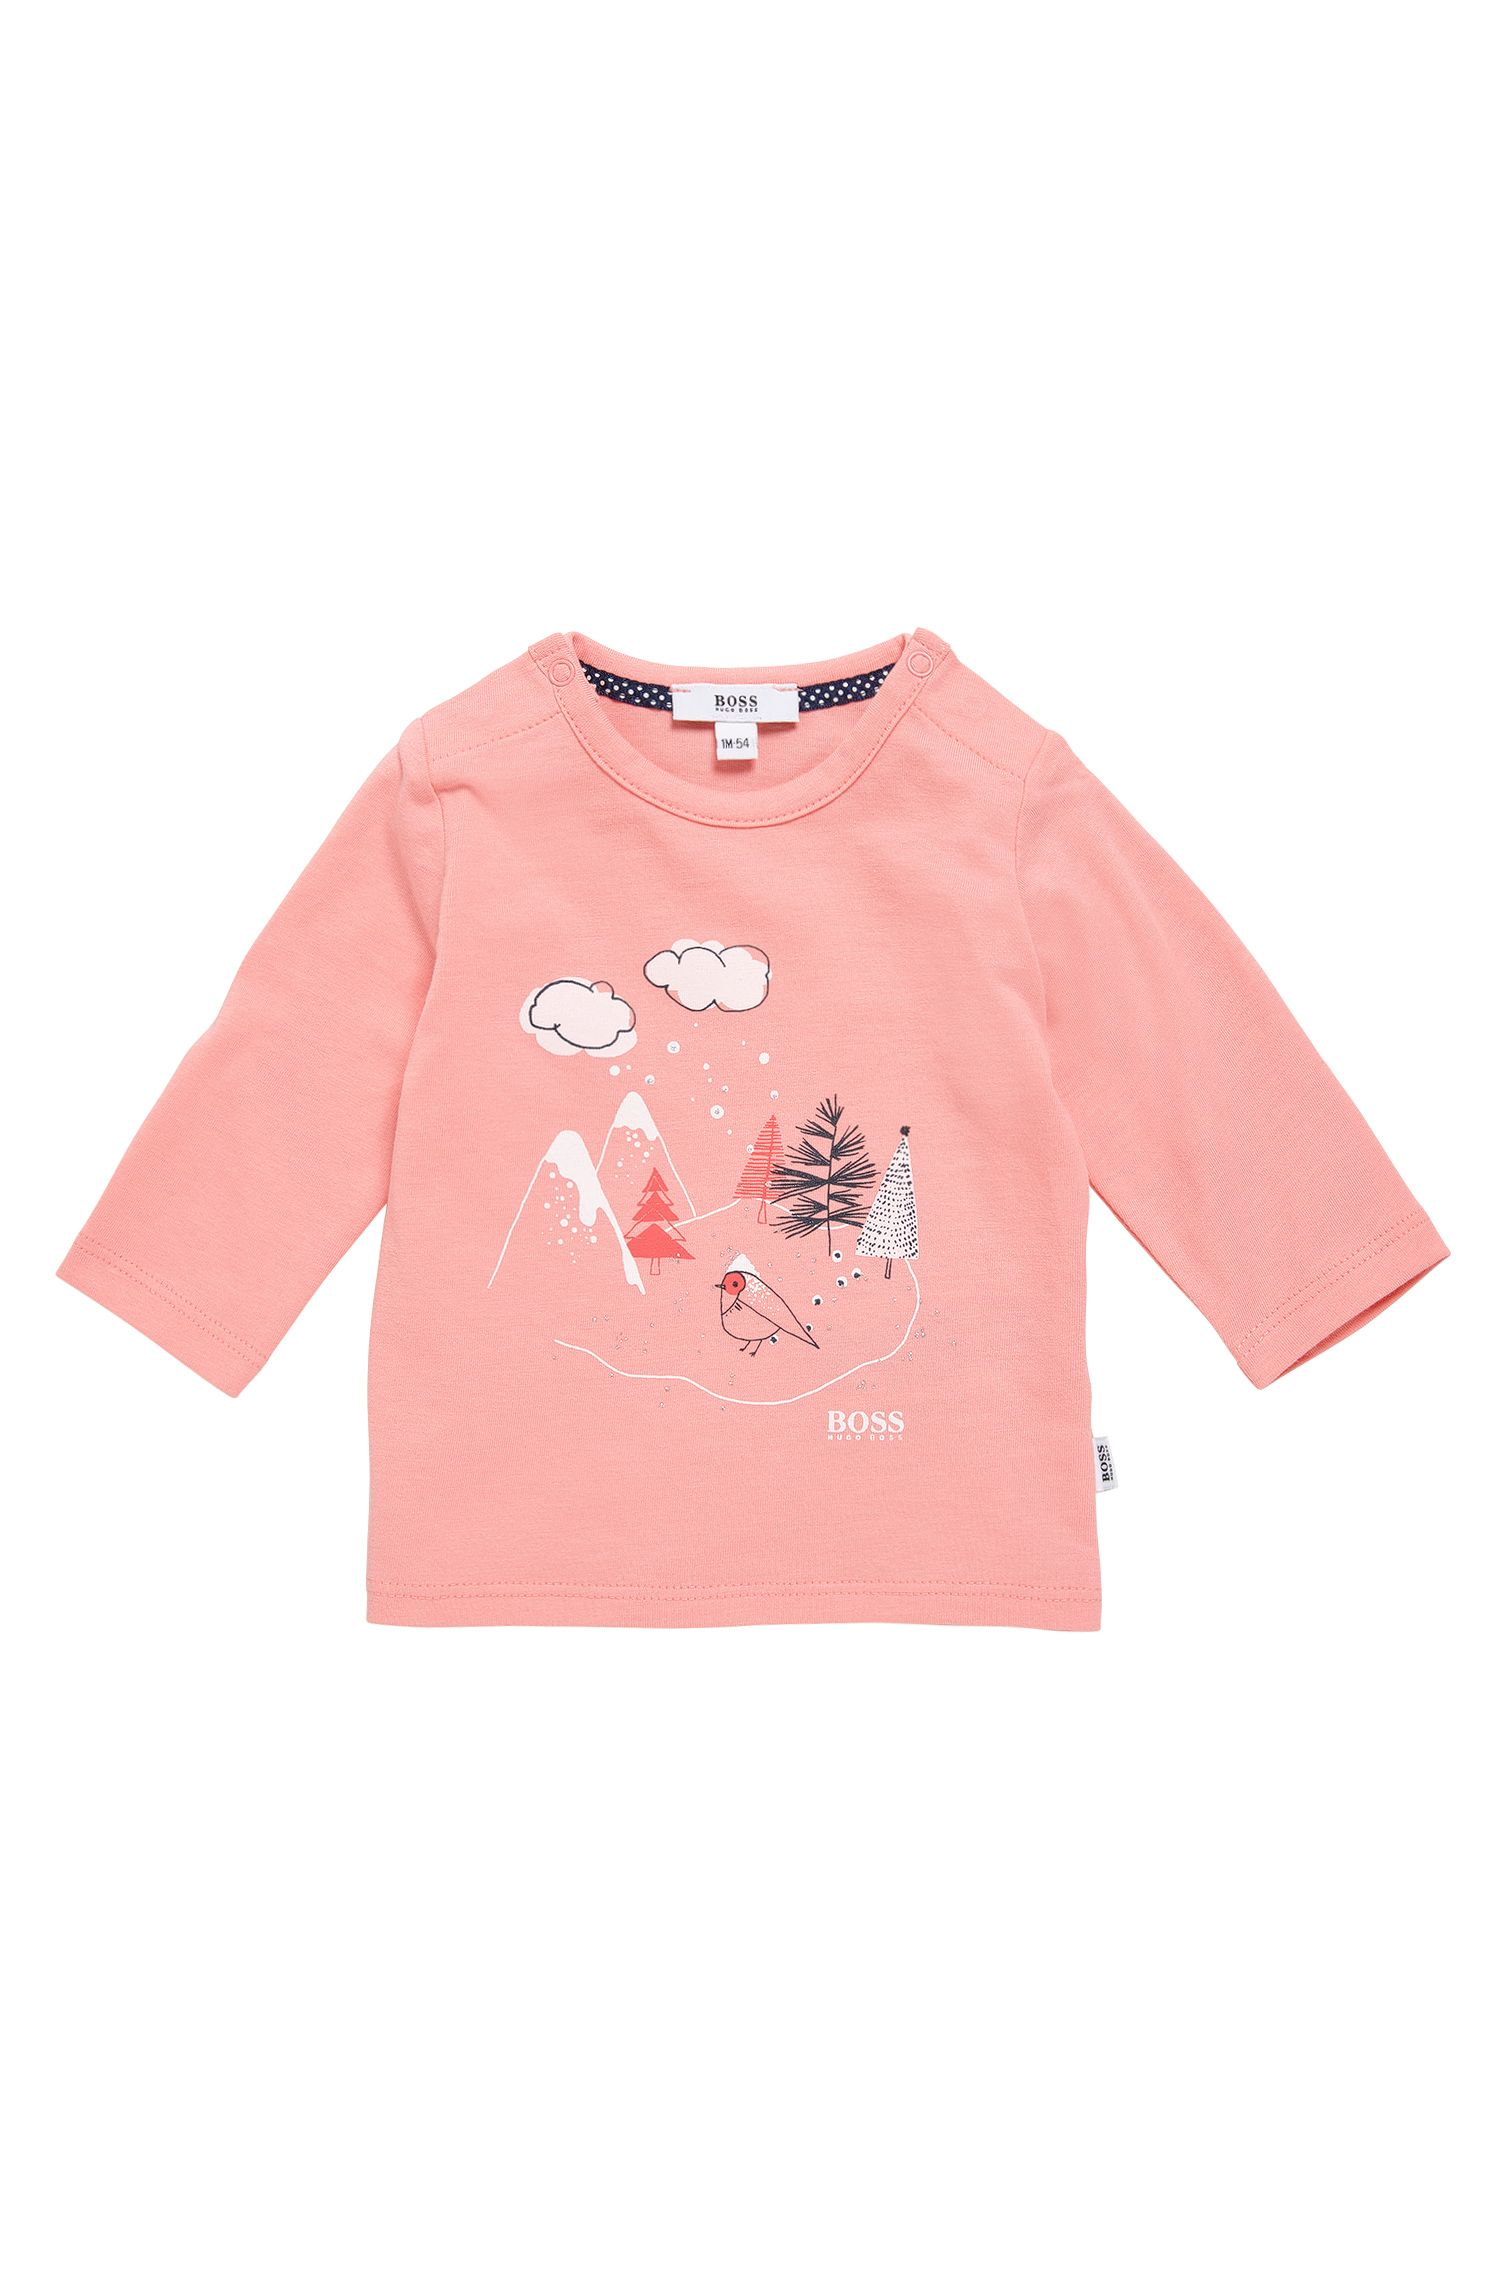 Newborns' long-sleeved printed shirt in cotton: 'J95204'